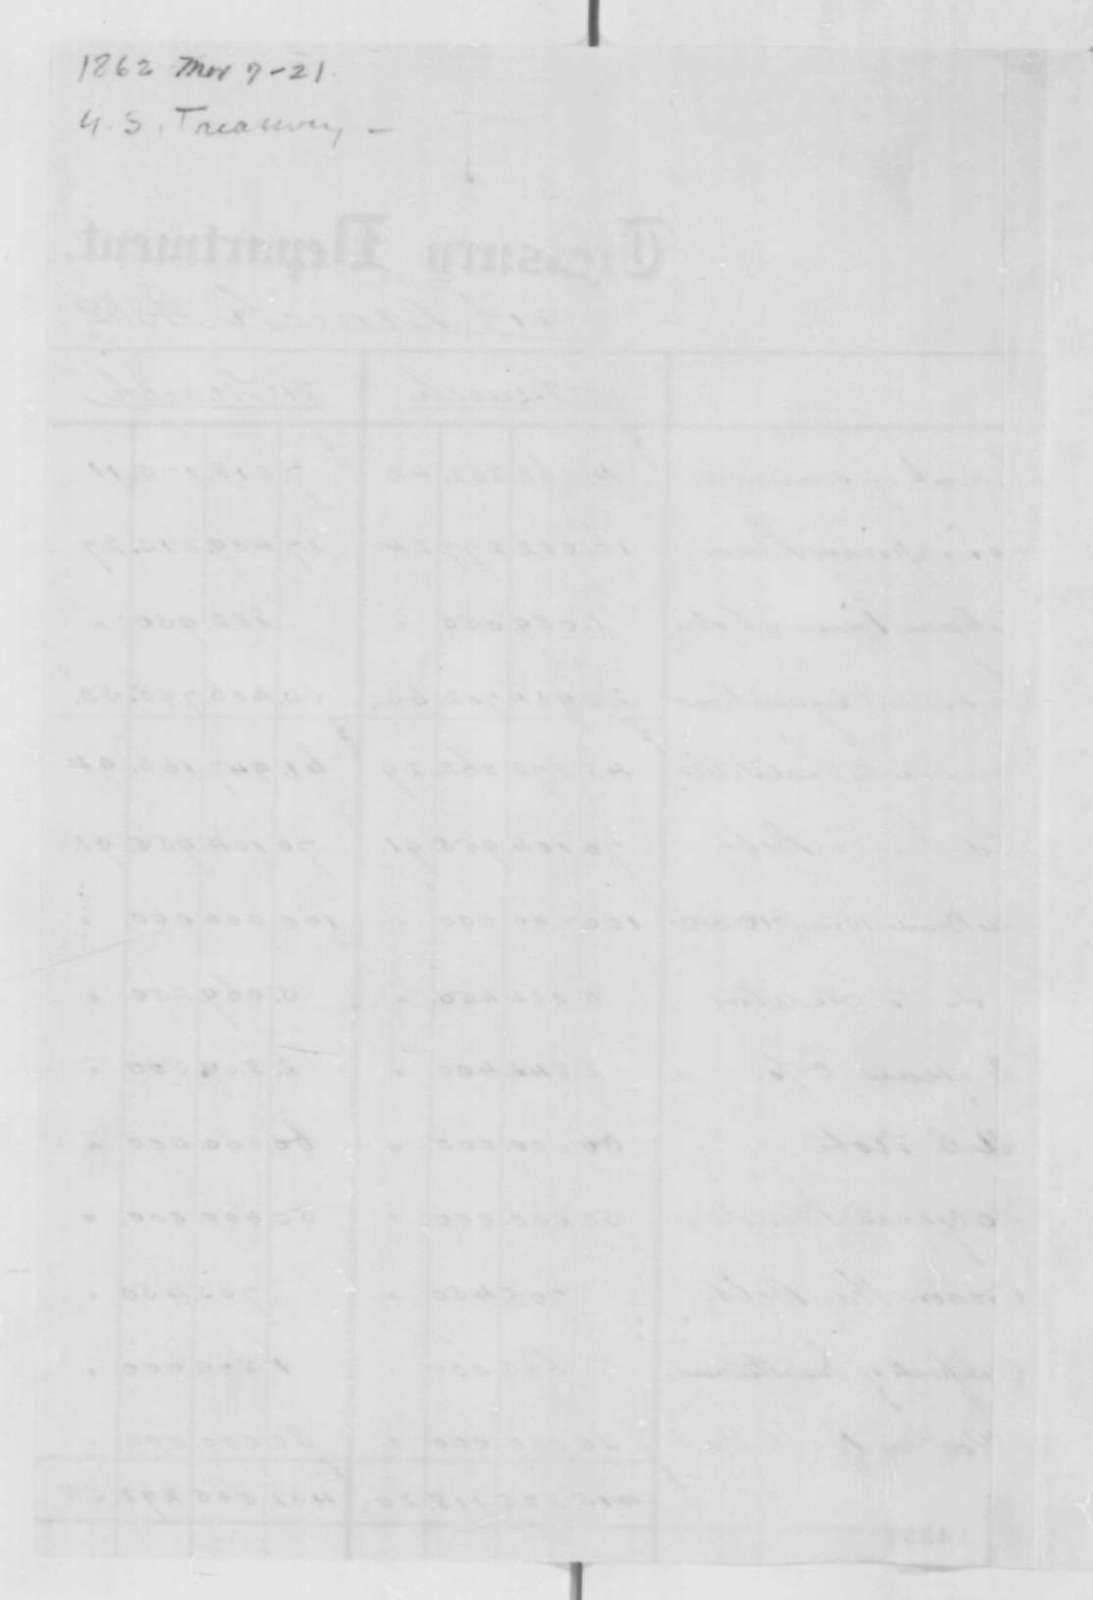 Treasury Department, Friday, March 07, 1862  (Financial Statement)